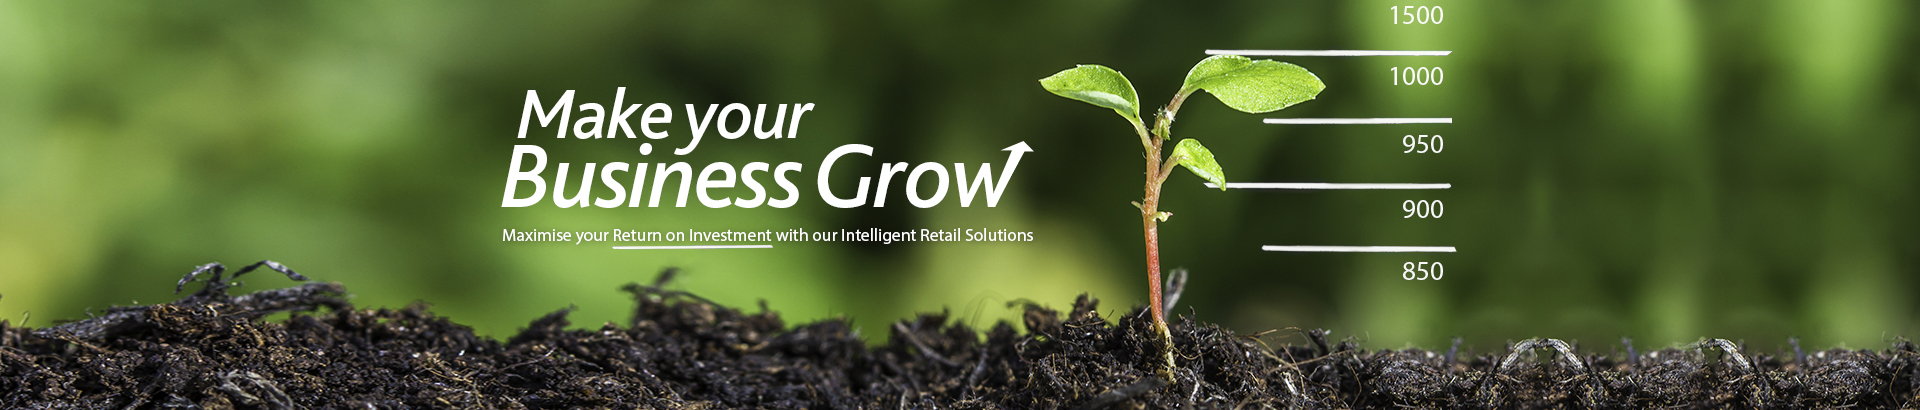 Make your business grow